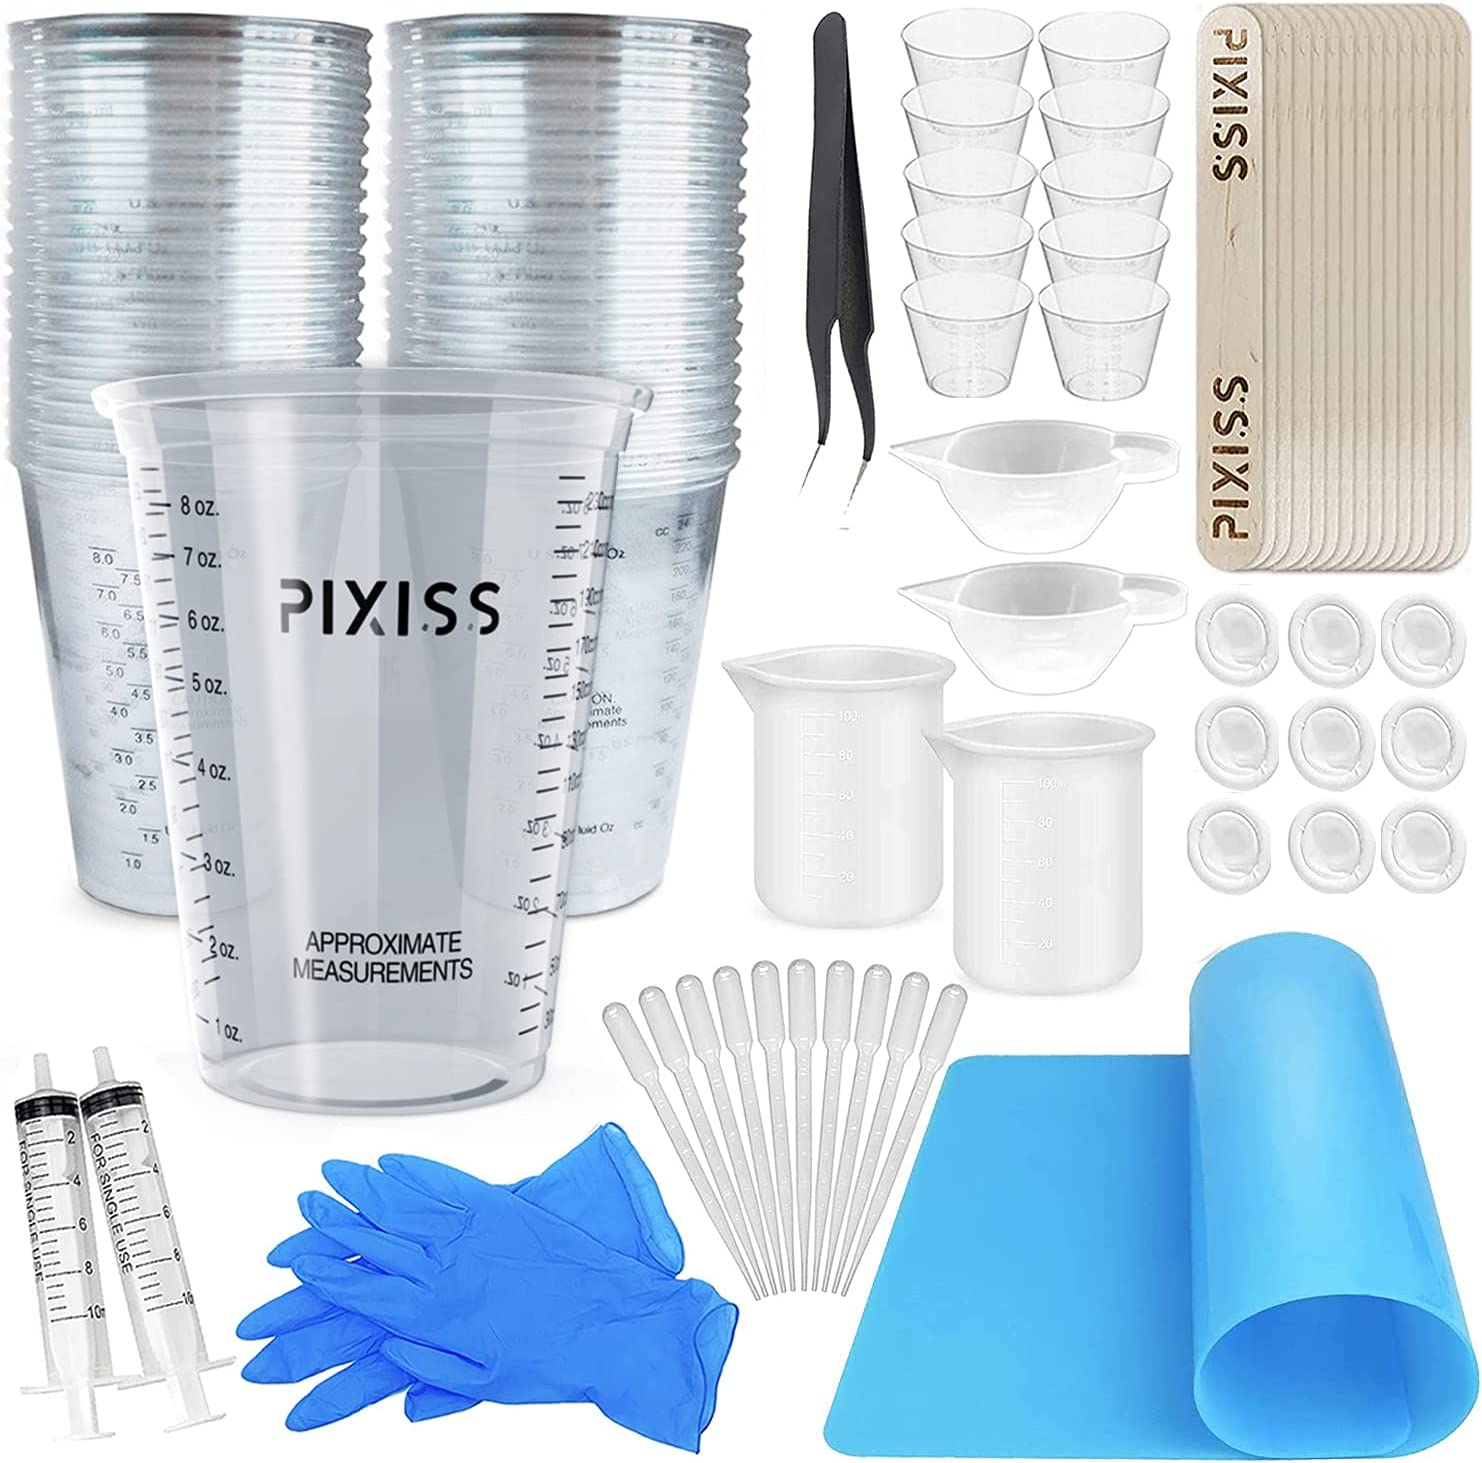 Disposable Measuring Cups Columbus Mall for Resin - Pack 20 Sales for sale 10oz Pixiss of Cle